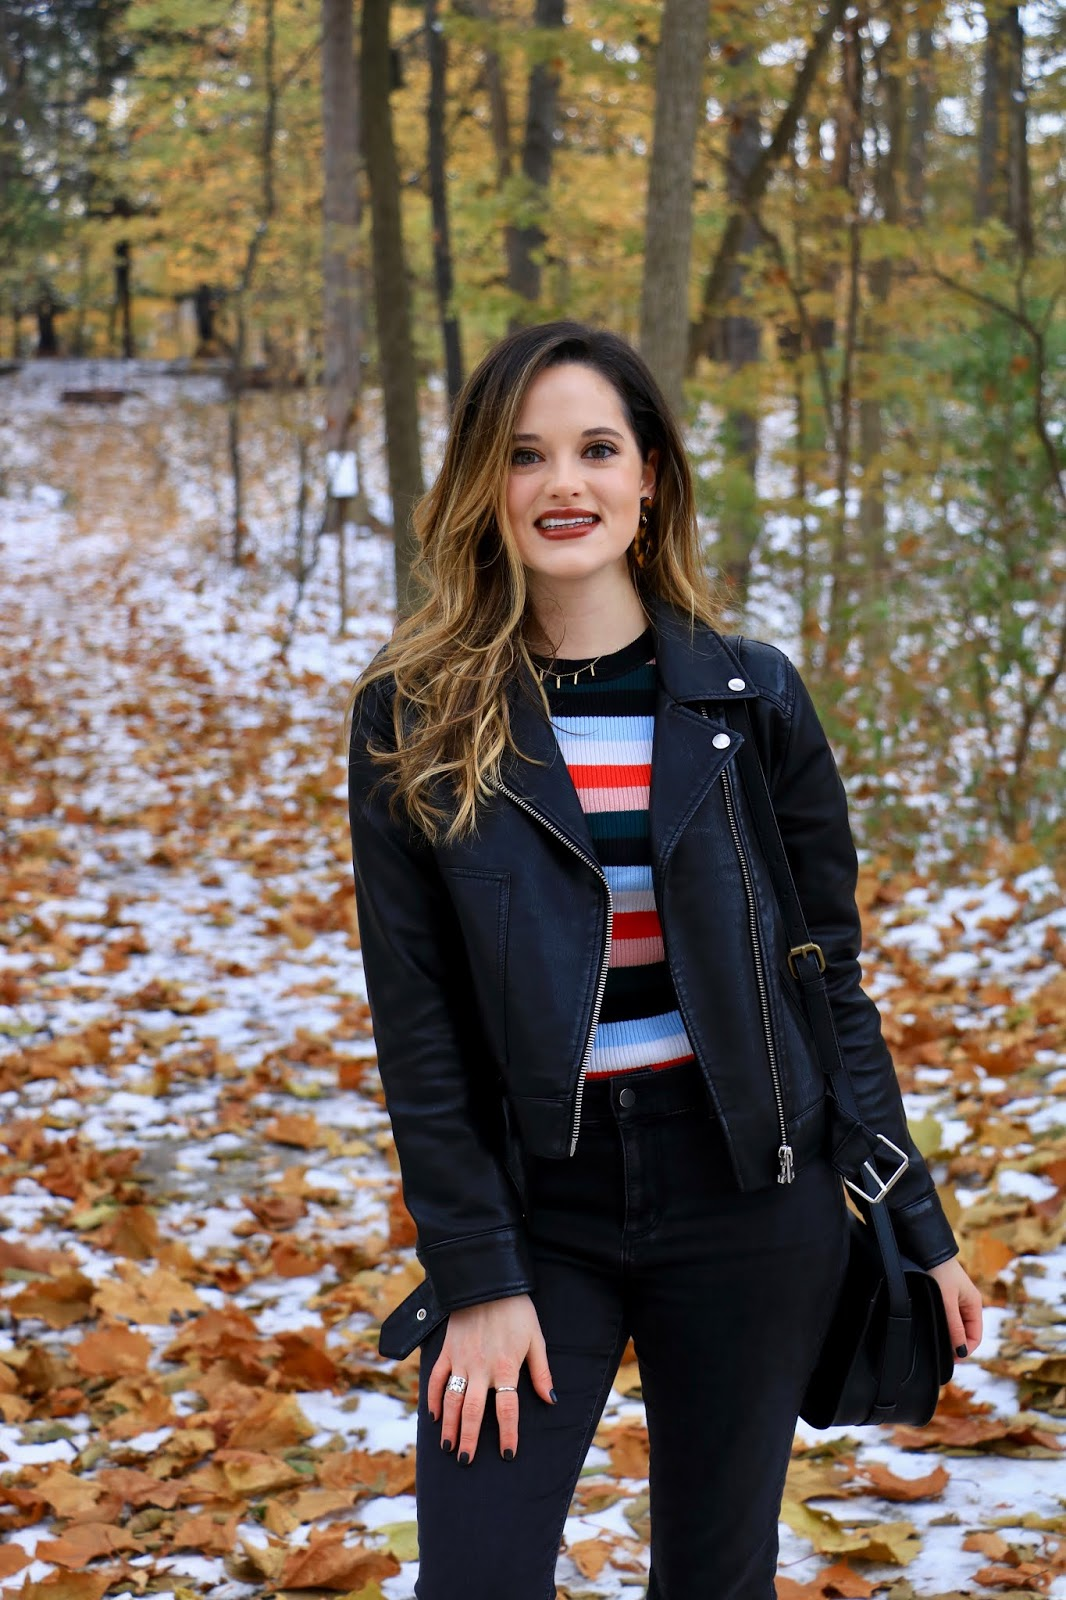 Nyc fashion blogger Kathleen Harper wearing her cute winter outfit idea.